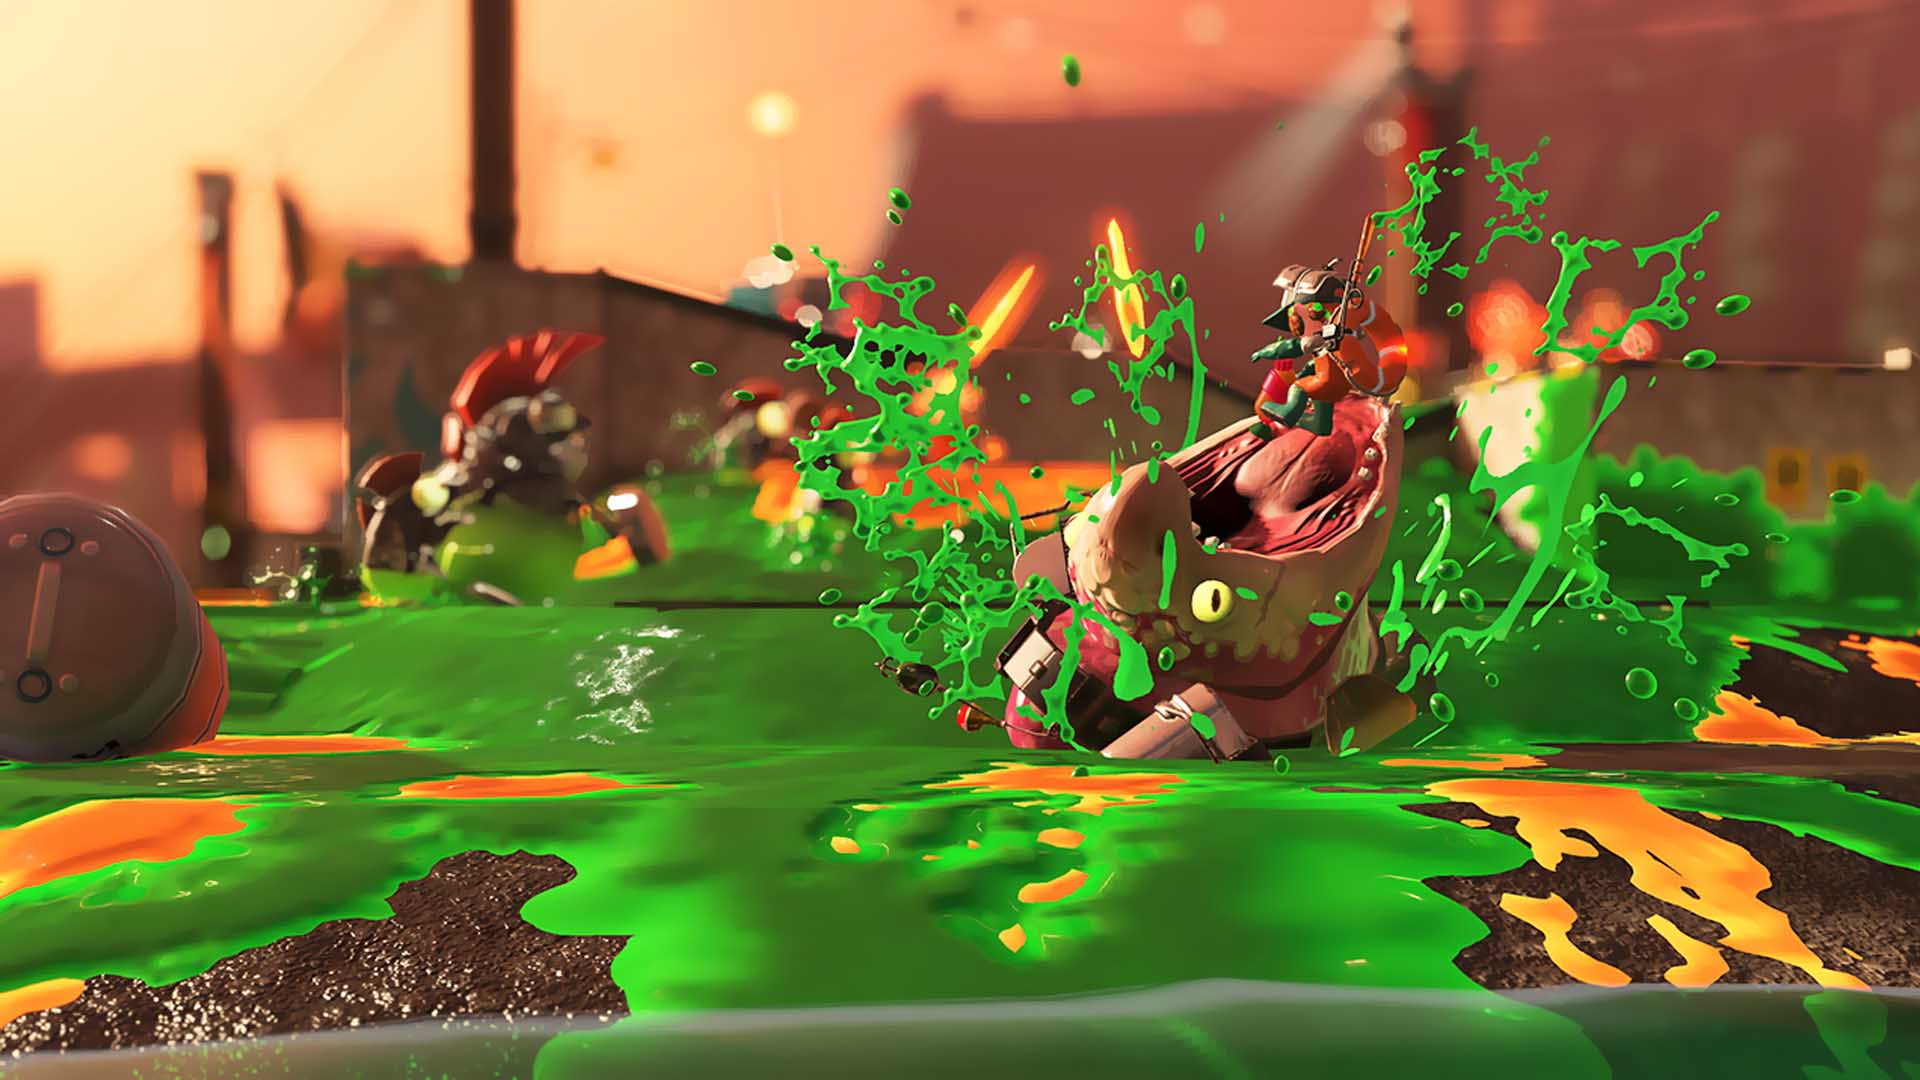 Maws lurking in ink to attack a poor inkling.